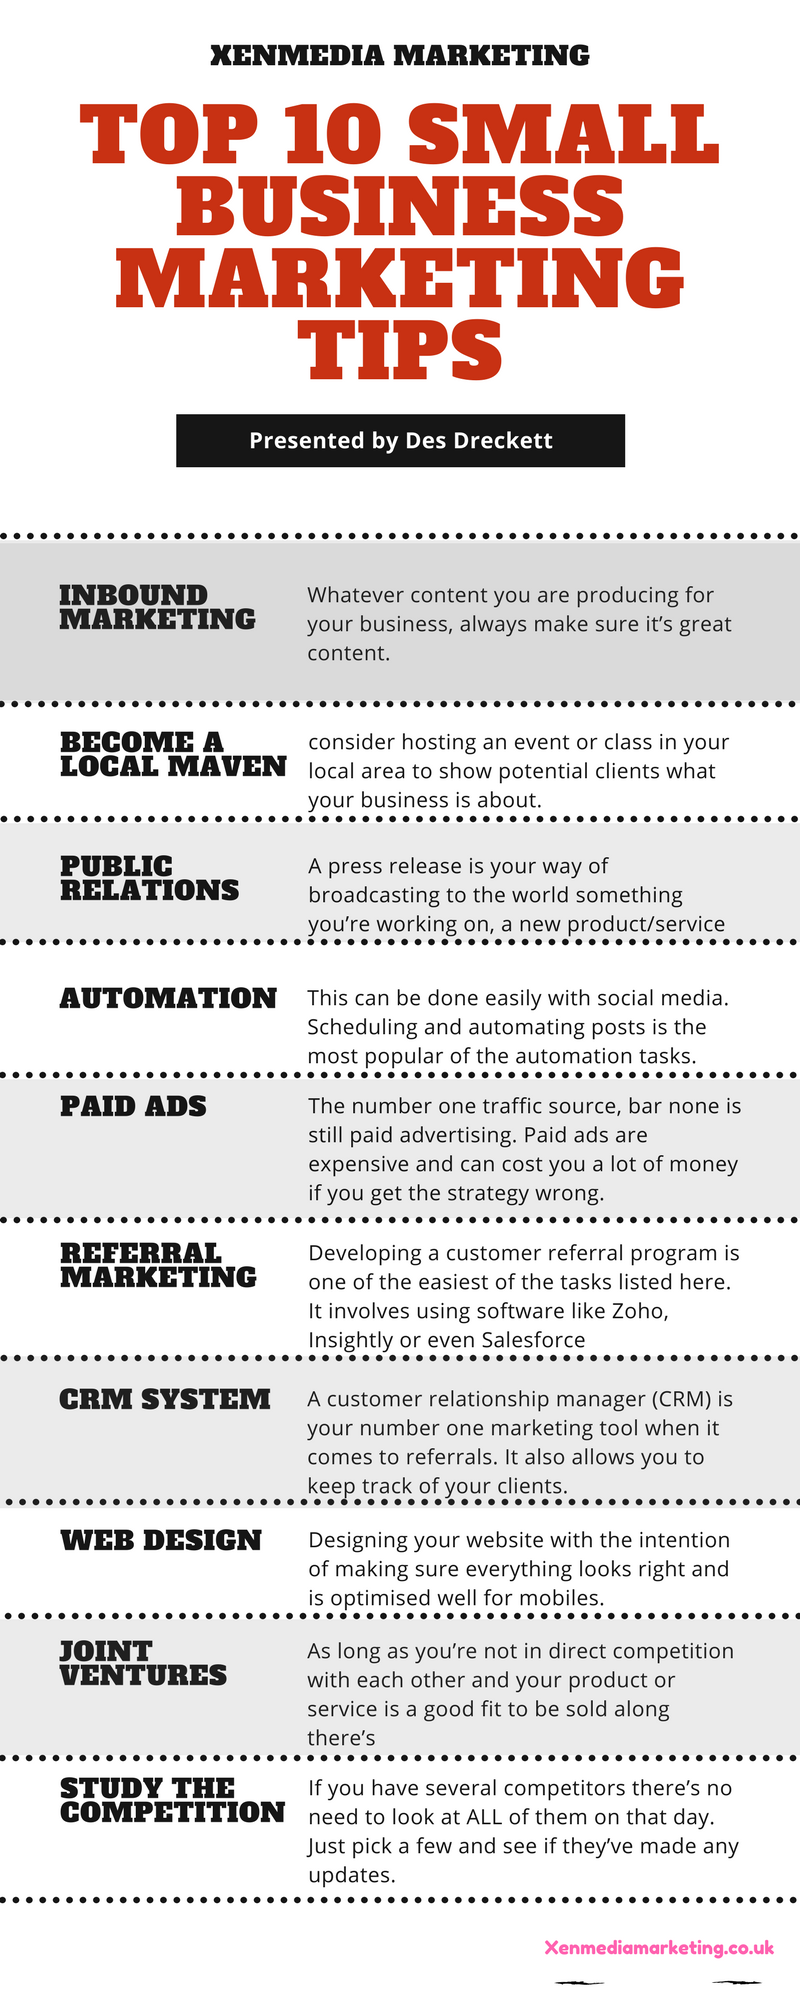 Top 10 Small Business Marketing Tips Infographic